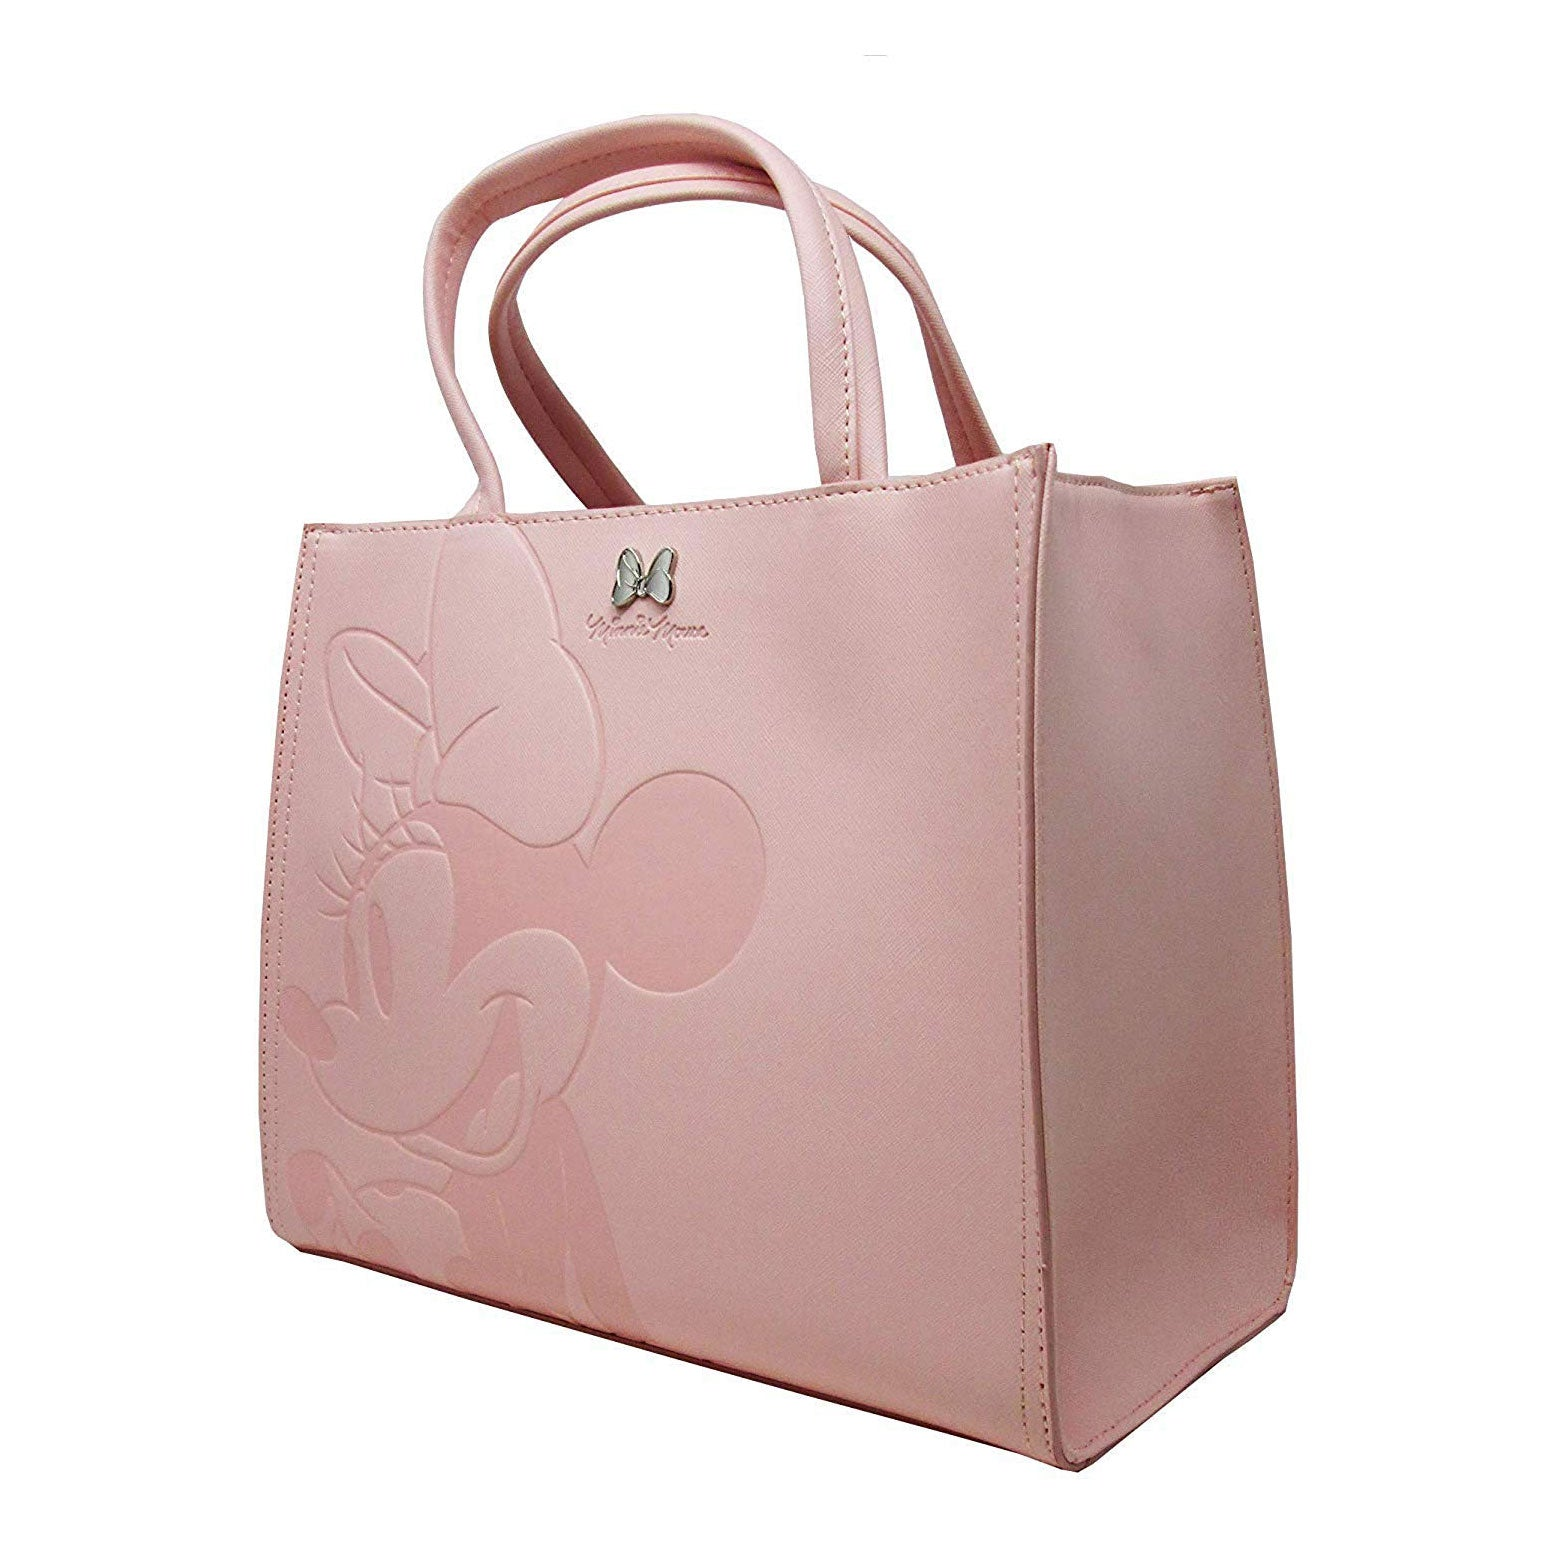 Loungefly x Disney Minnie Mouse Pink Debossed Top-Handle Bag